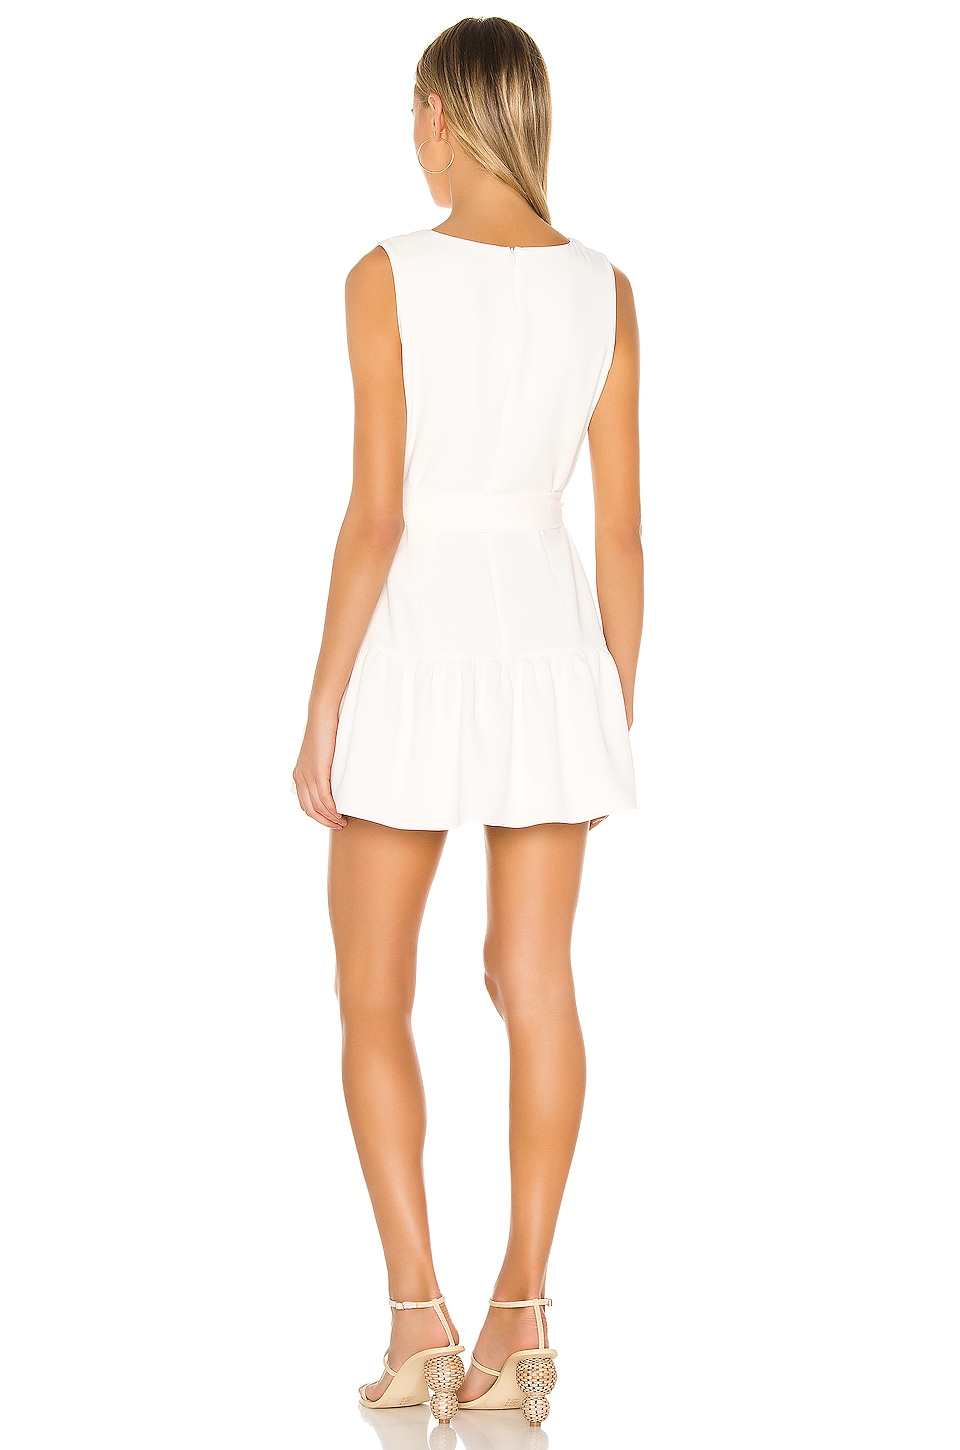 Sleeveless Selene Dress, view 3, click to view large image.